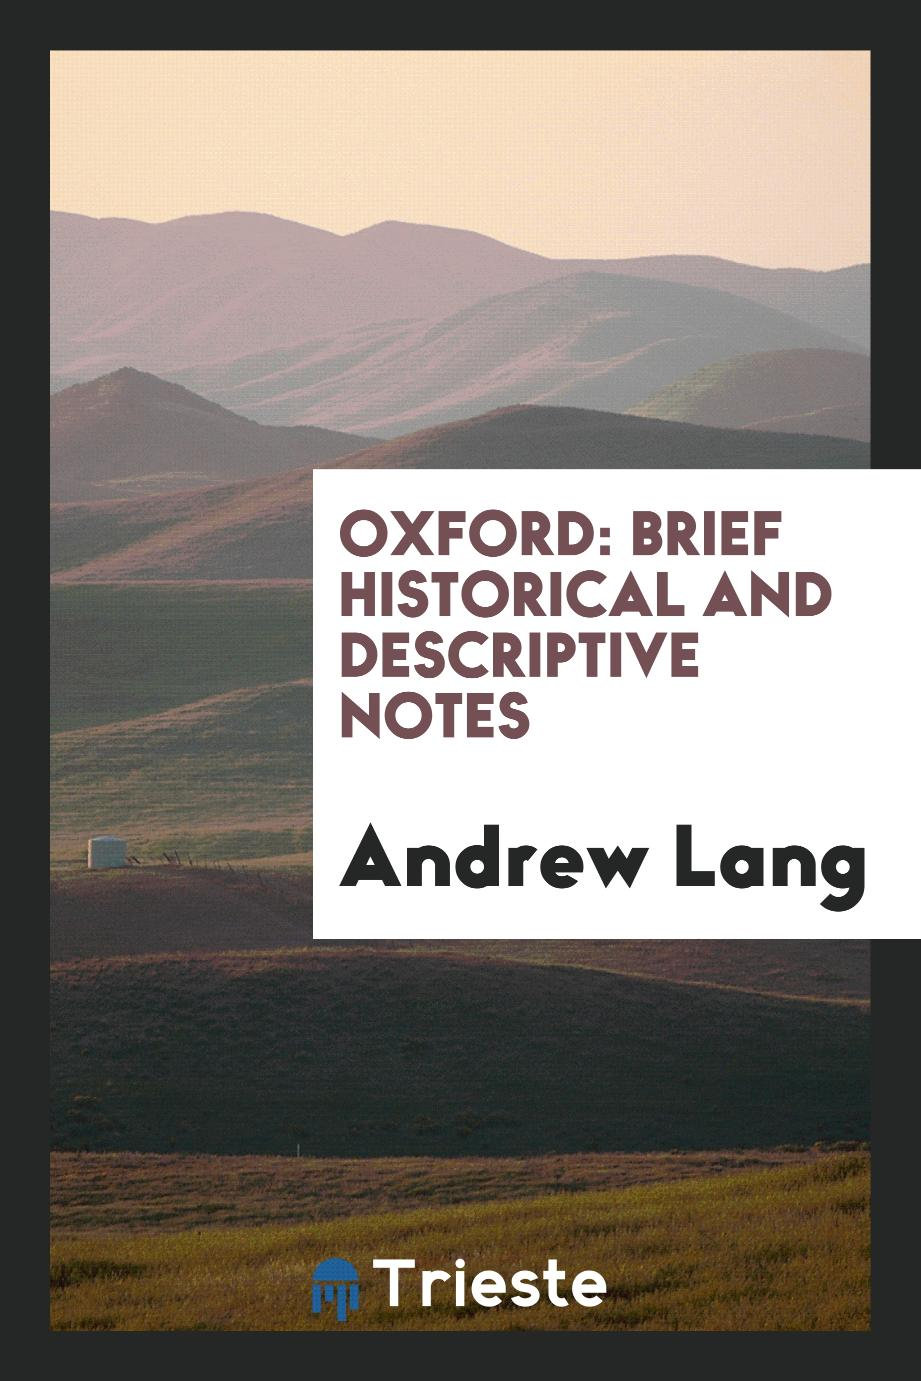 Andrew Lang - Oxford: Brief Historical and Descriptive Notes